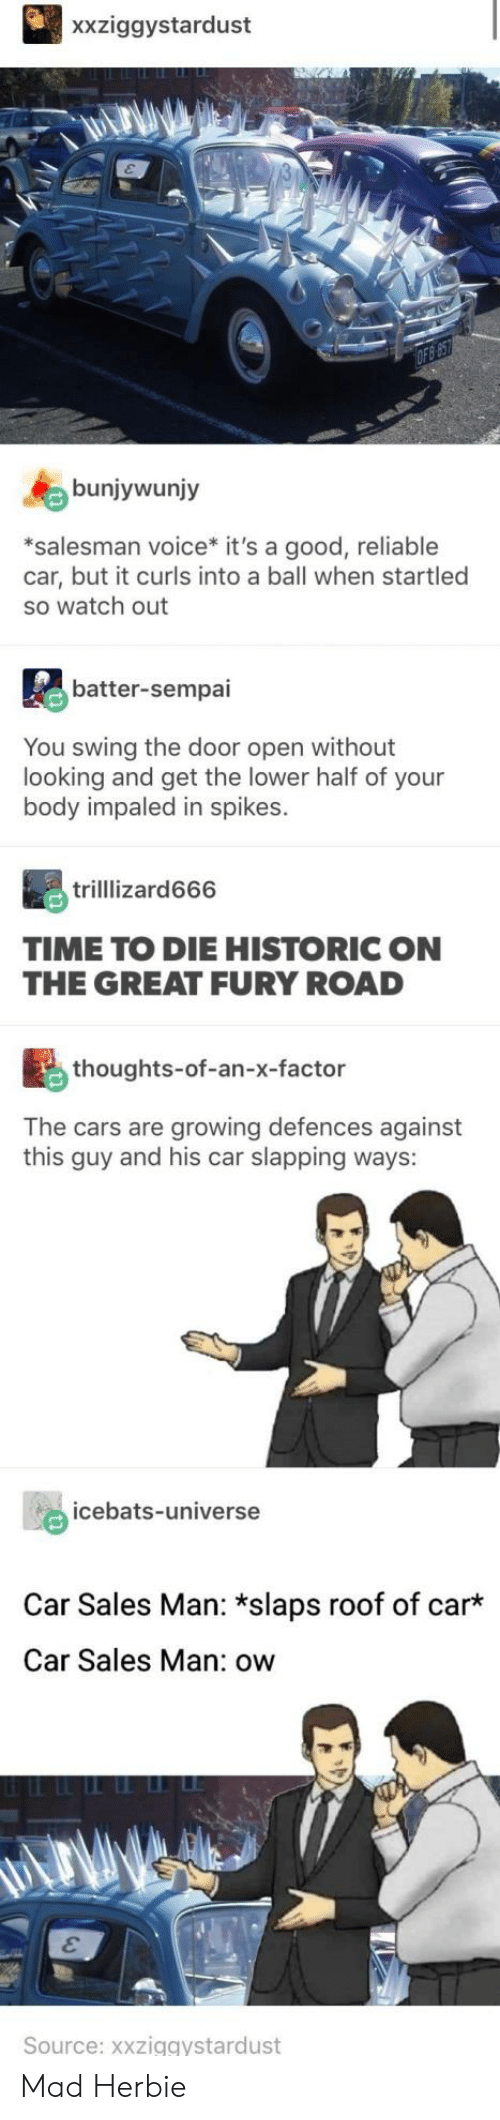 Cars, Watch Out, and Good: xxziggystardust  bunjywunjy  *salesman voice* it's a good, reliable  car, but it curls into a ball when startled  so watch out  batter-sempai  You swing the door open without  looking and get the lower half of your  body impaled in spikes.  trilllizard666  TIME TO DIE HISTORIC ON  THE GREAT FURY ROAD  thoughts-of-an-x-factor  The cars are growing defences against  this guy and his car slapping ways:  icebats-universe  Car Sales Man: *slaps roof of car  Car Sales Man: ow  Source: xxziggystardust Mad Herbie